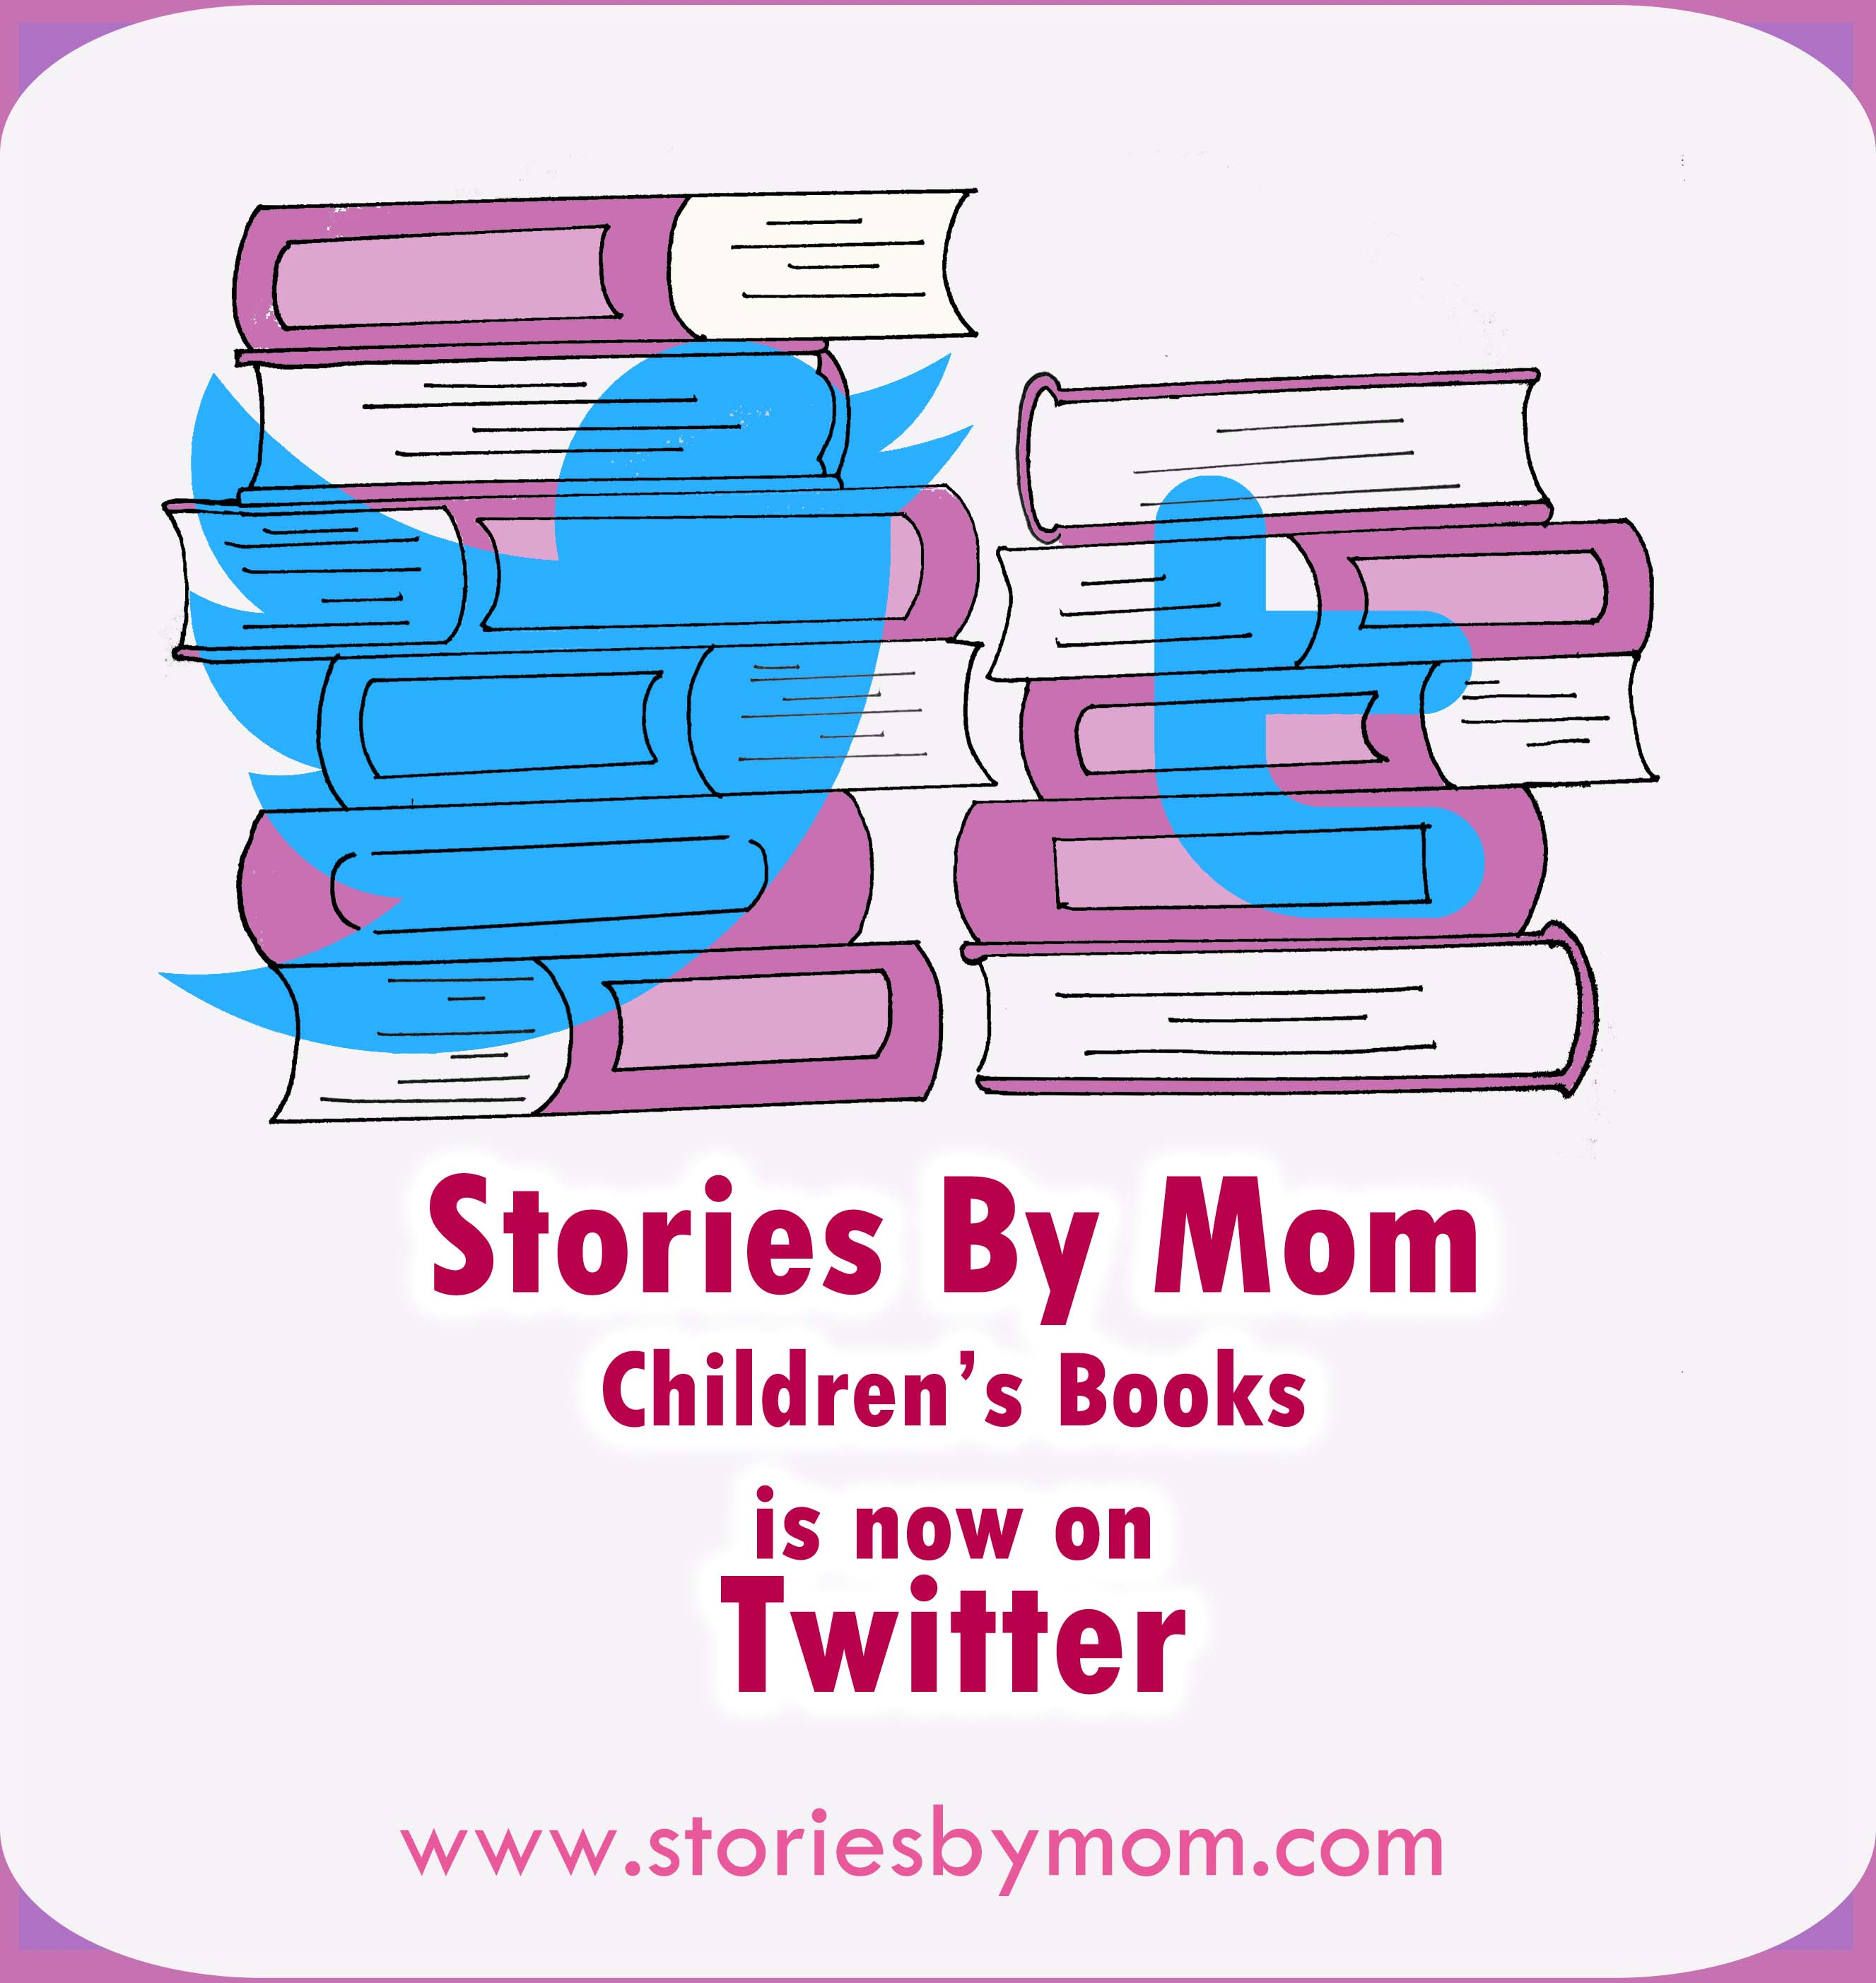 Stories by Mom Children's Book now on Twitter! https://twitter.com/StoriesByMom